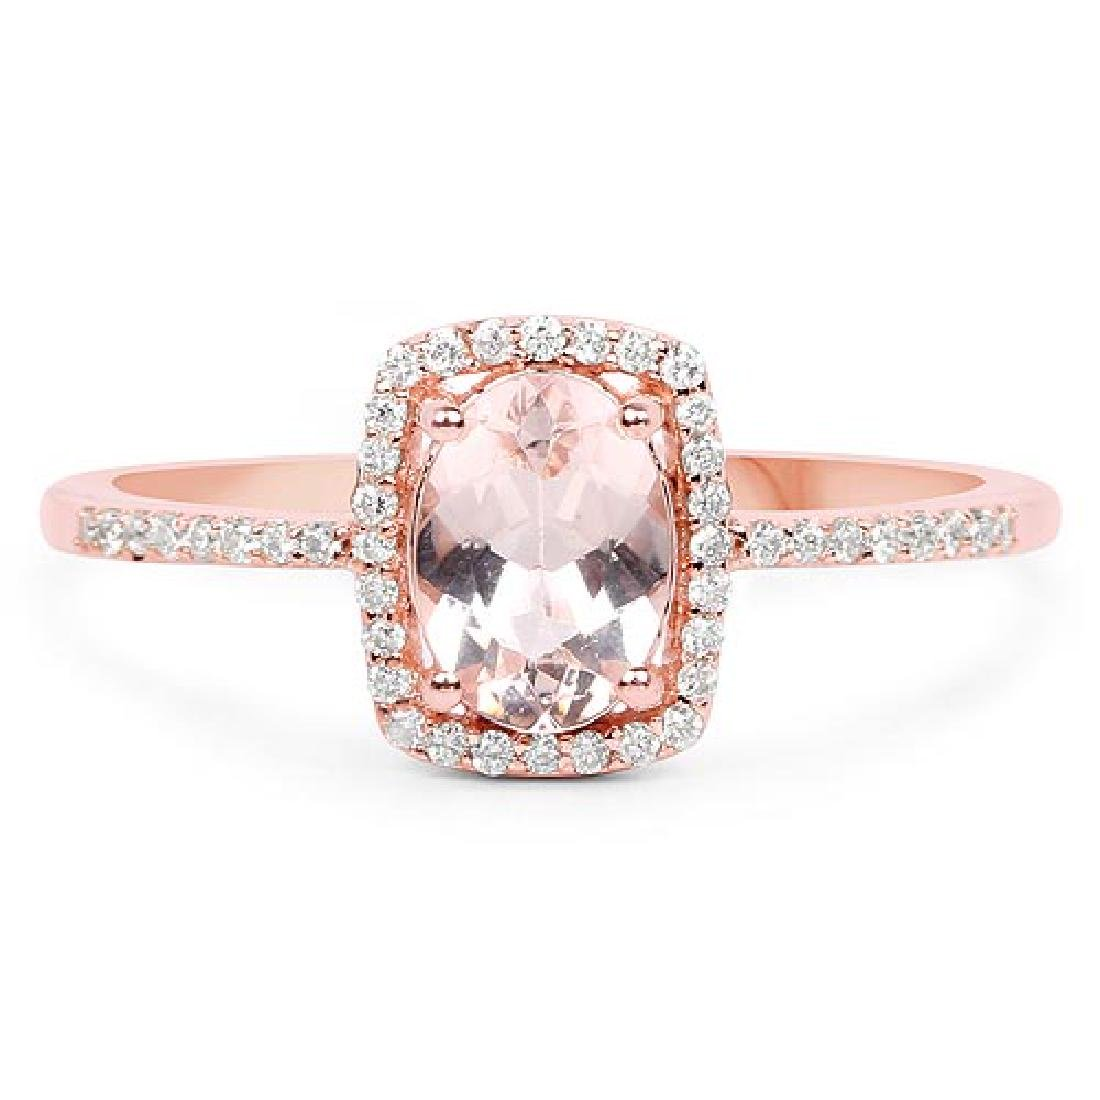 0.83 Carat Genuine Morganite and White Diamond 14K Rose